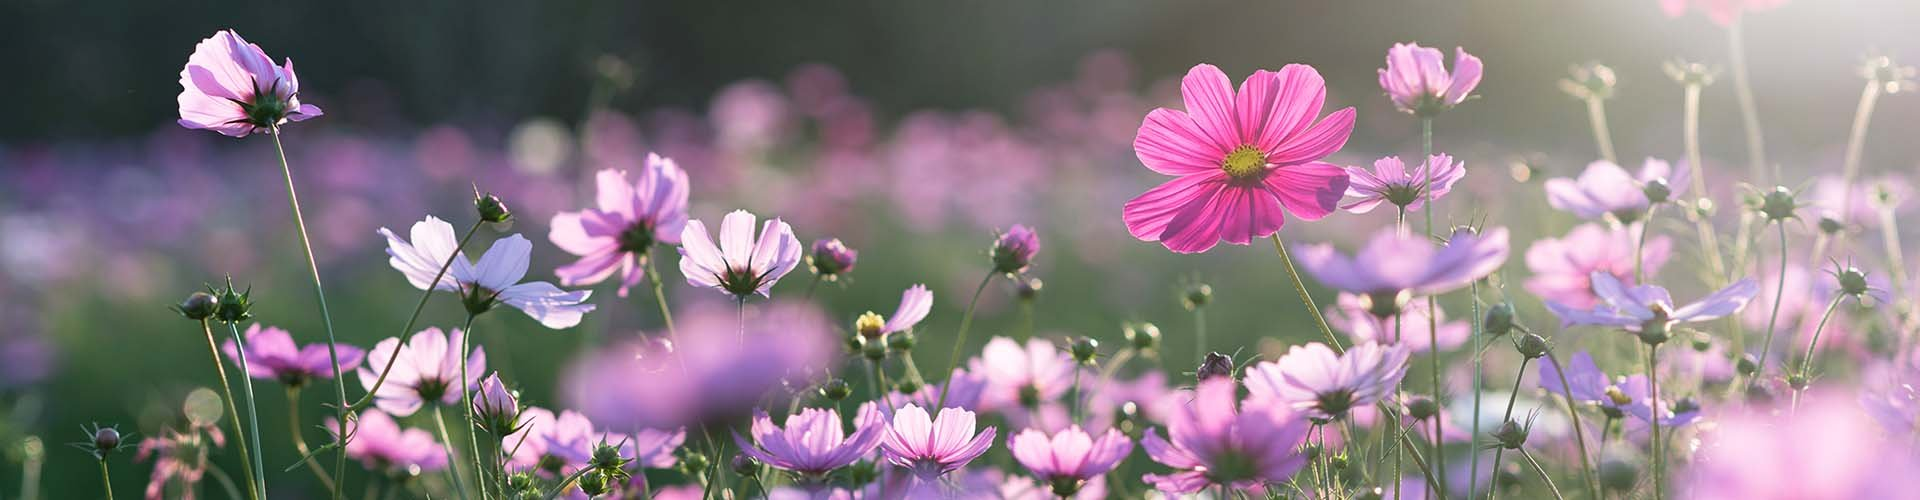 What kinds of flowers can you expect to see this Spring?